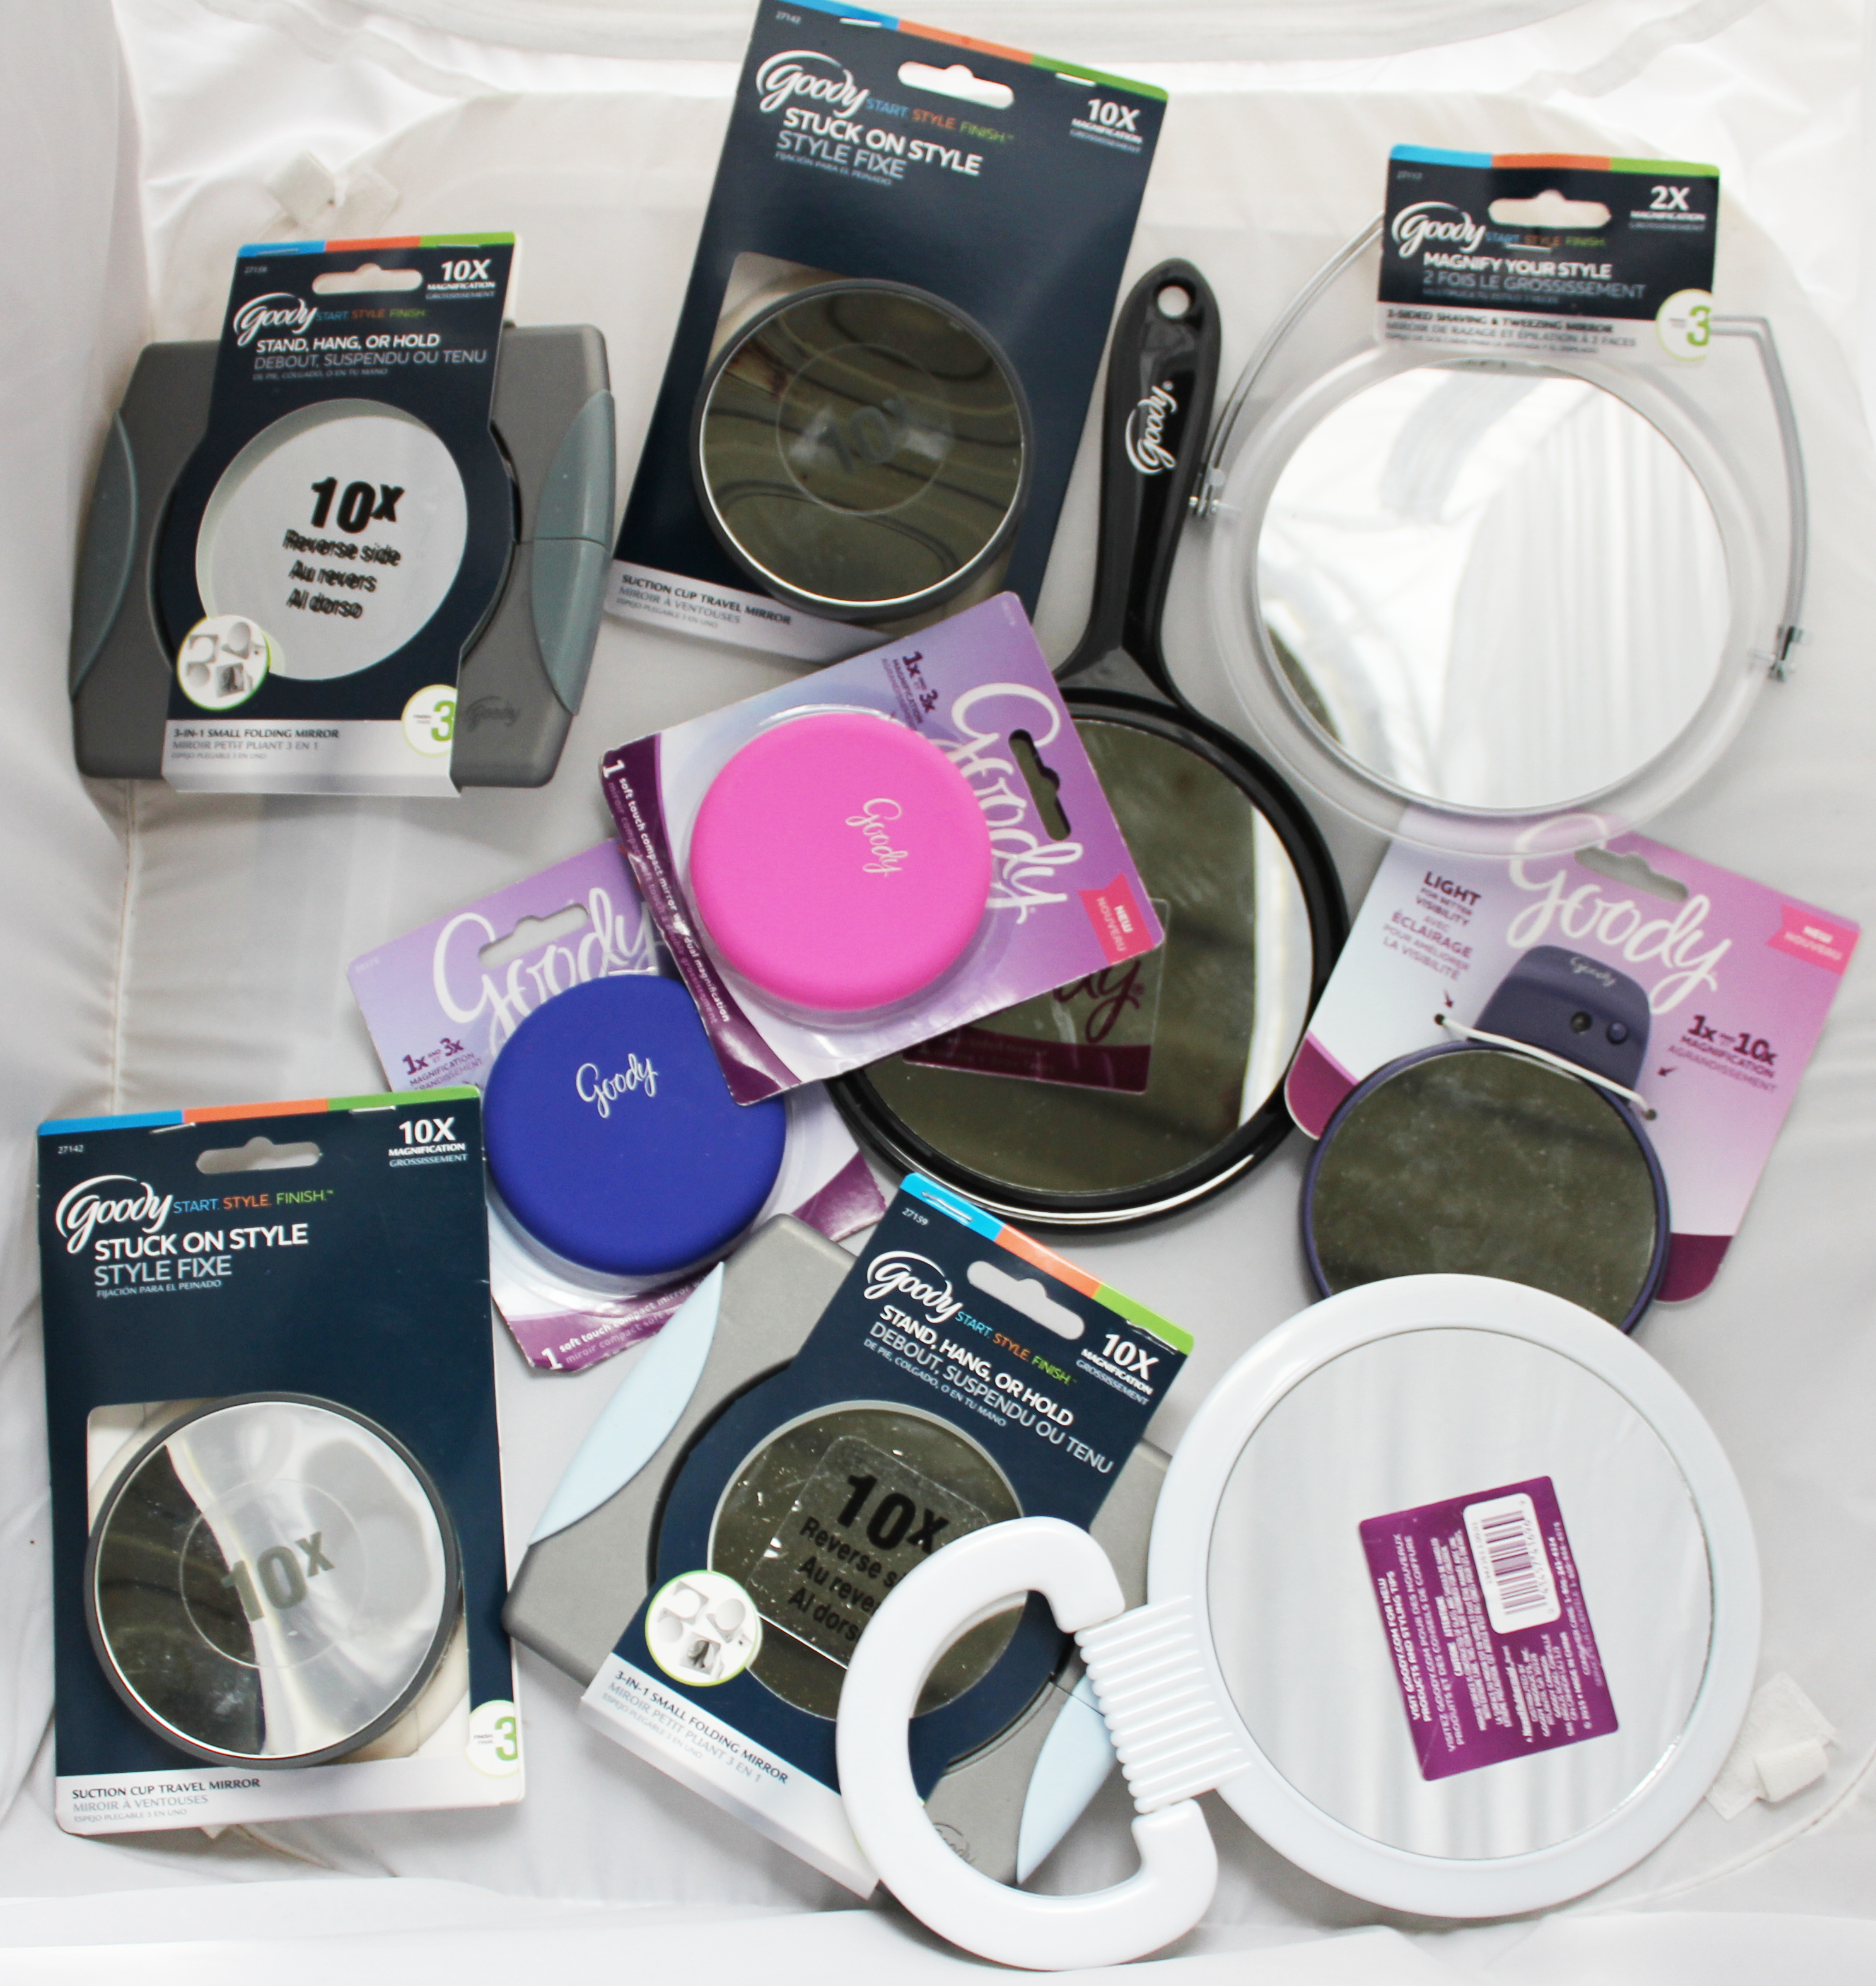 Goody Compact Magnifying Mirror 36-Pack Mix Lot - 1 Count